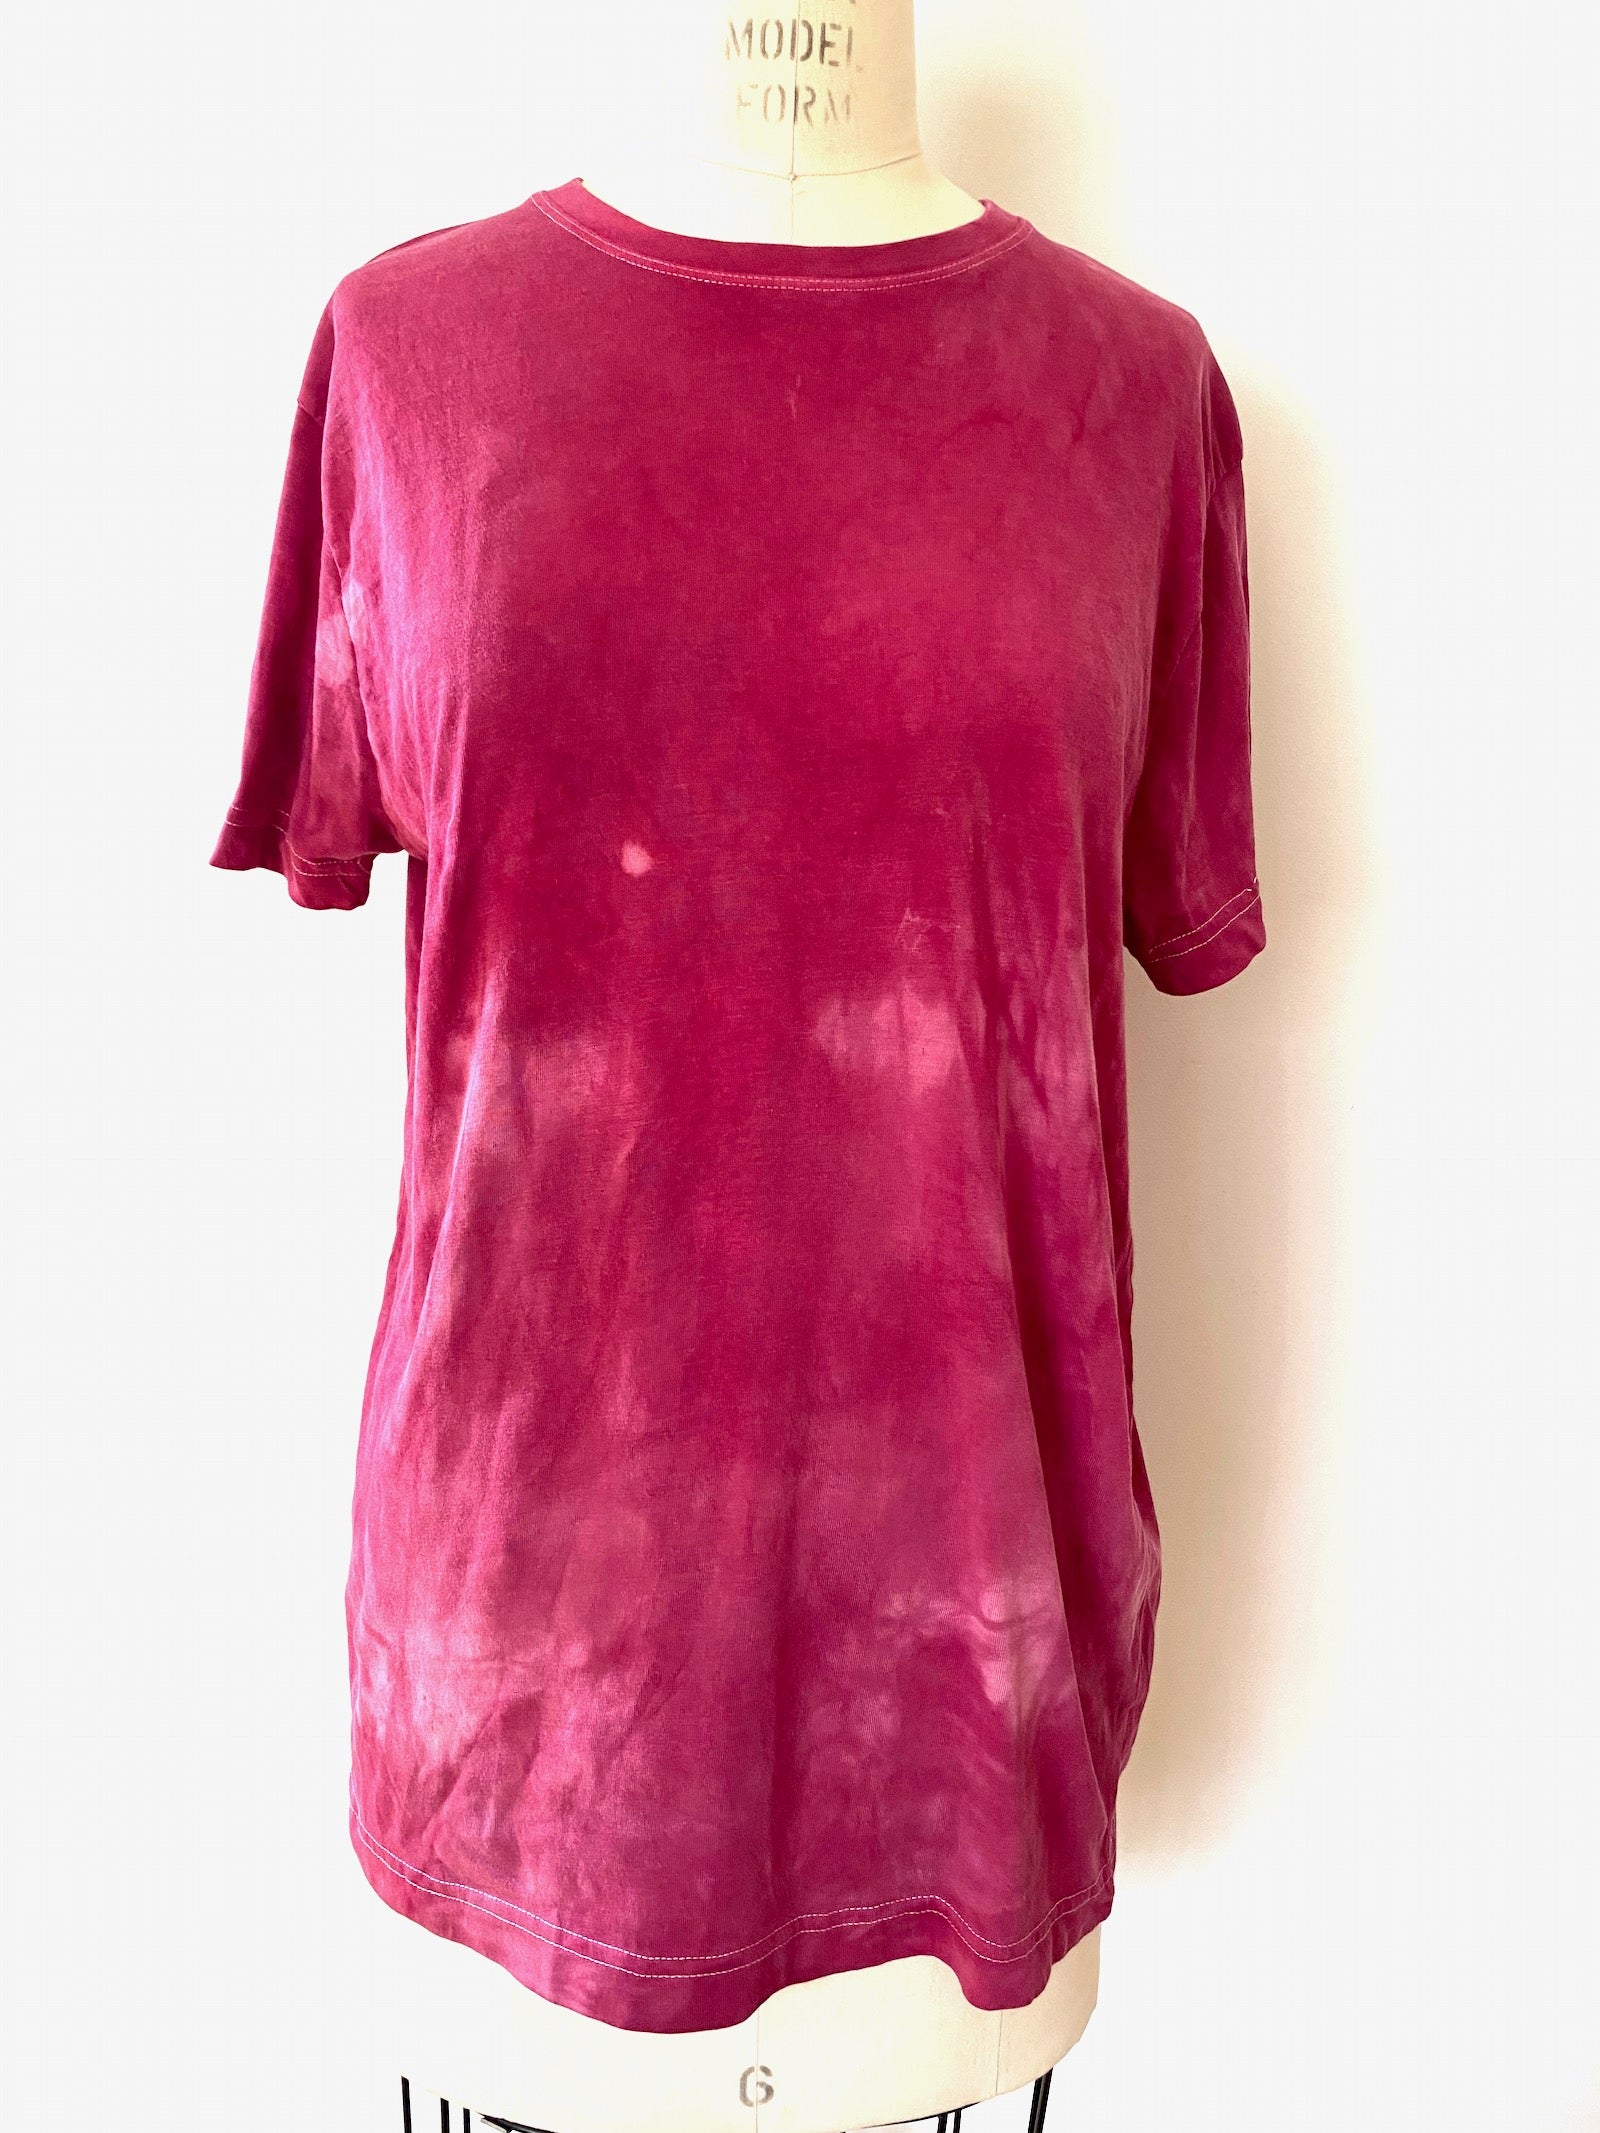 T shirt | For Men & Women | California Grown Cotton | Ultra Soft | Fuchsia Hand Dyed Solid - Modern Shibori